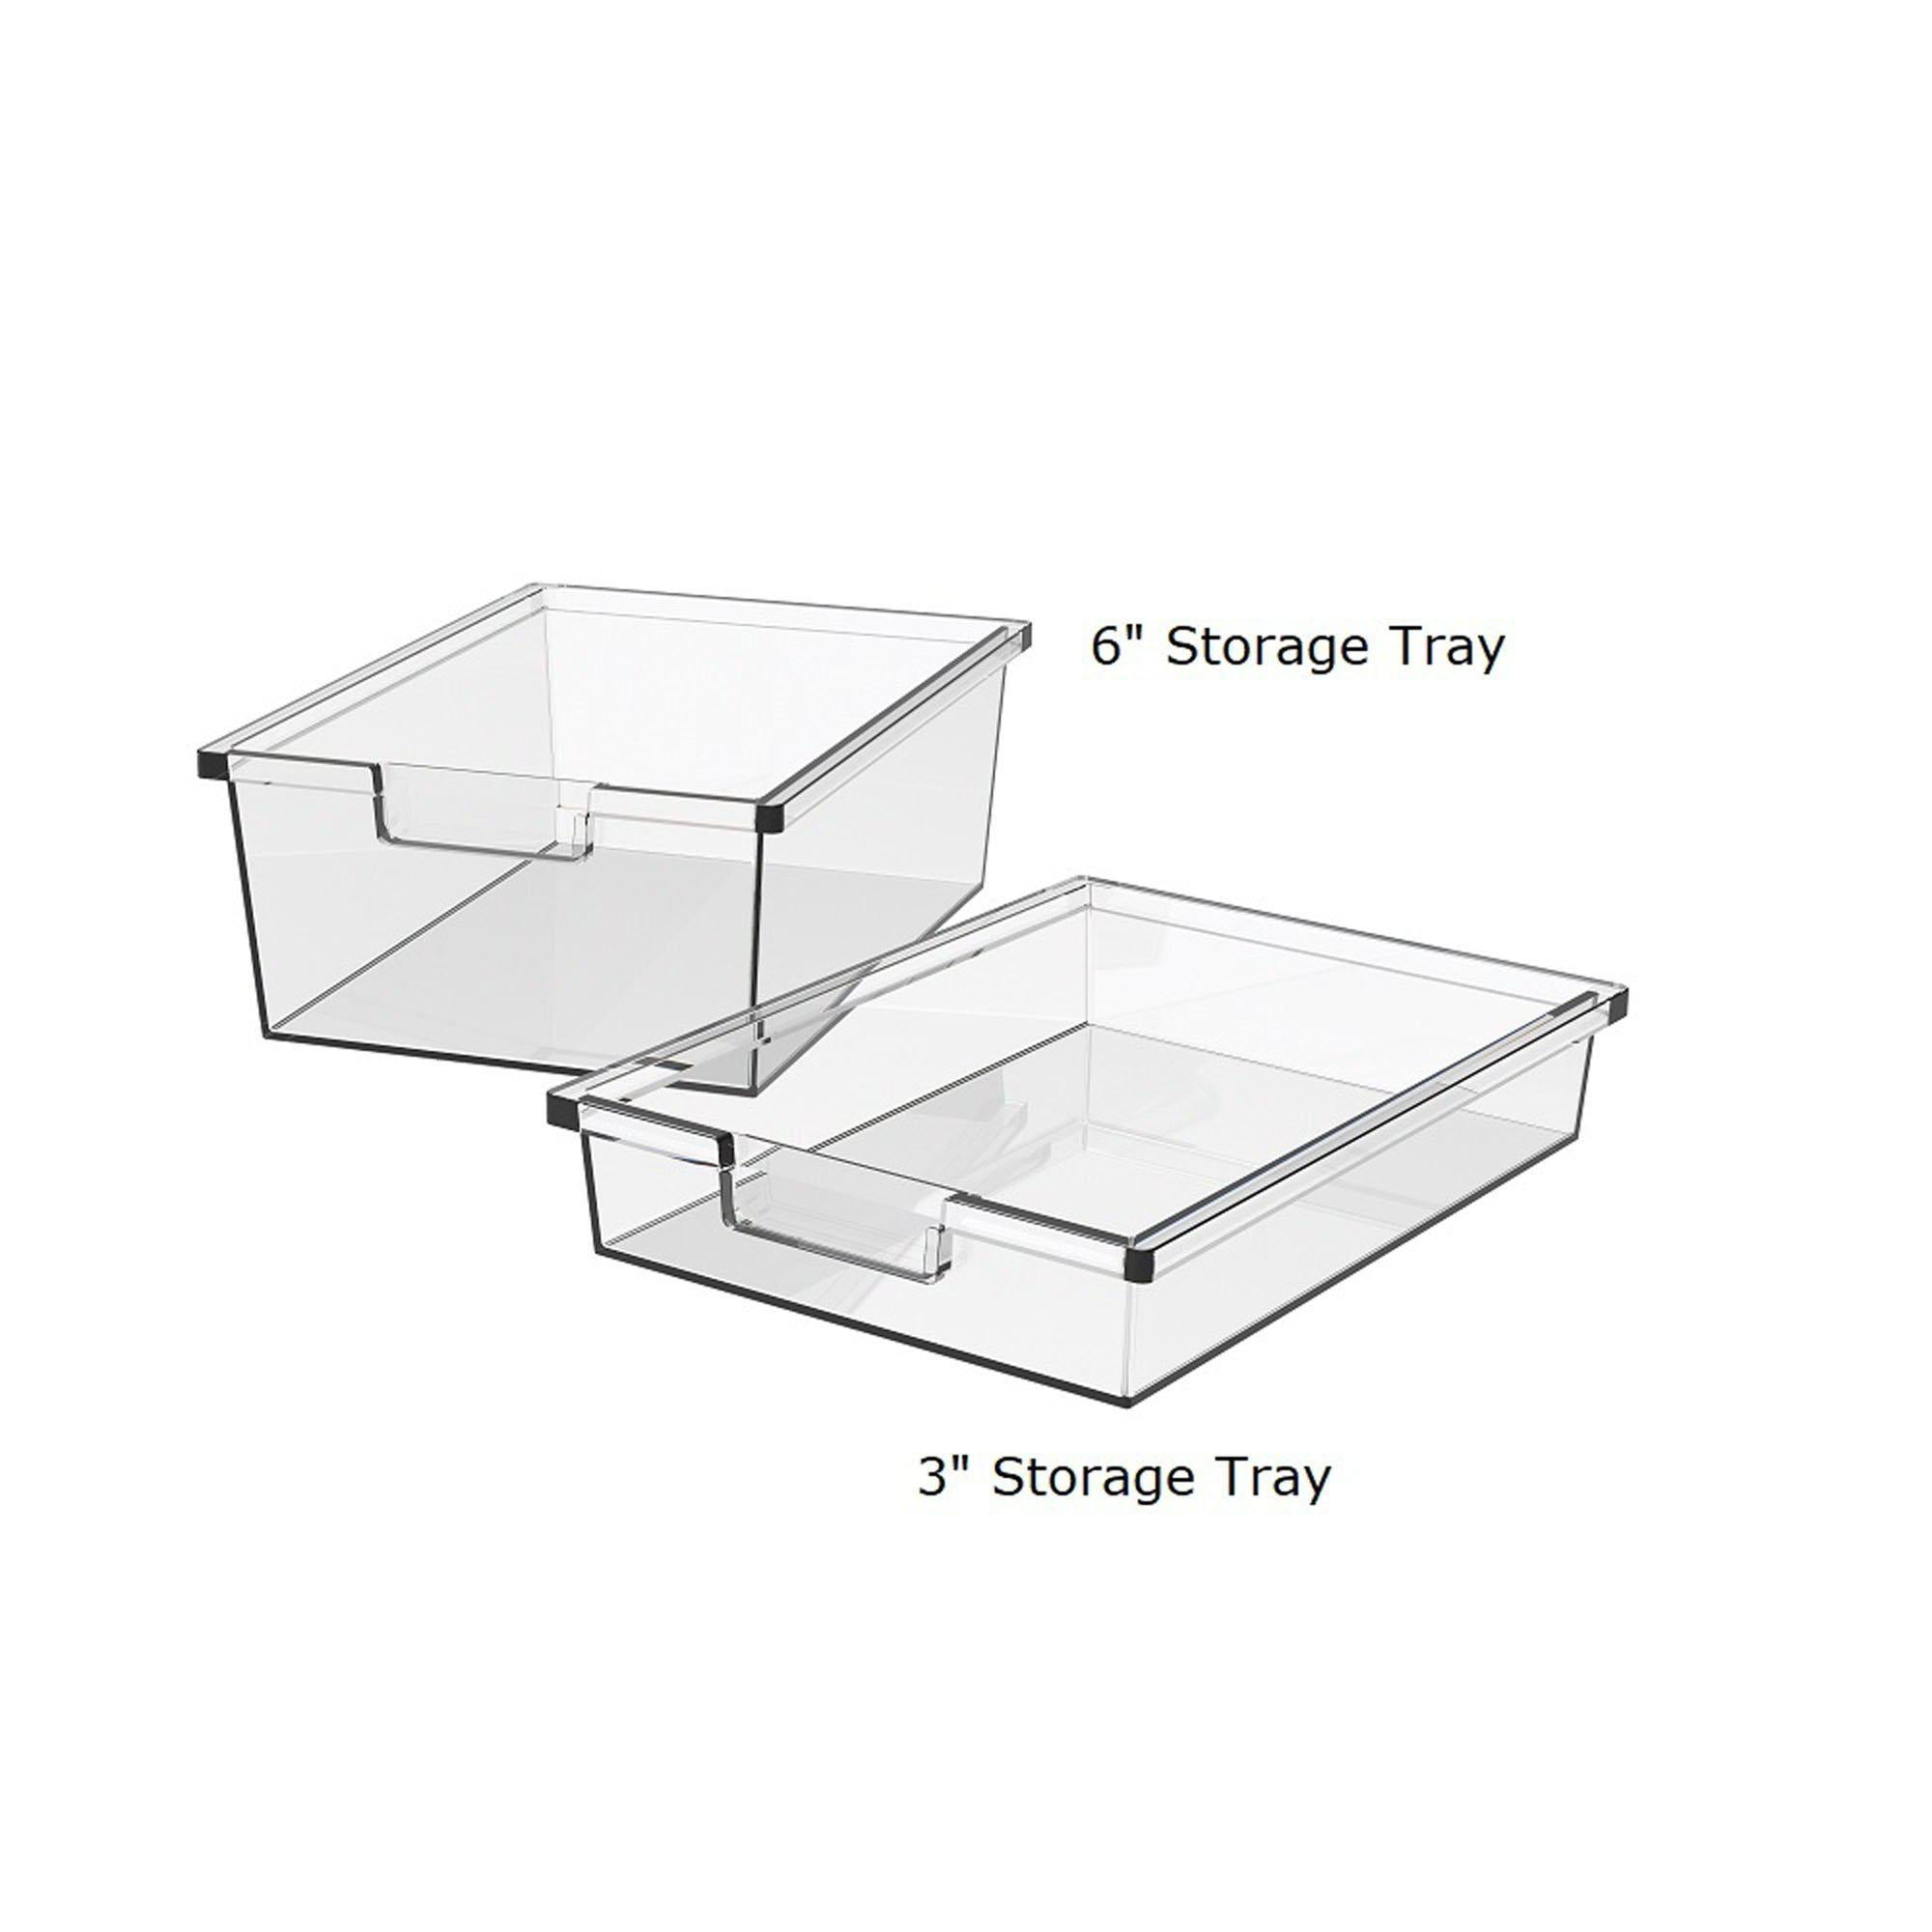 Storage Trays for Makerspace Mobile Storage Carts